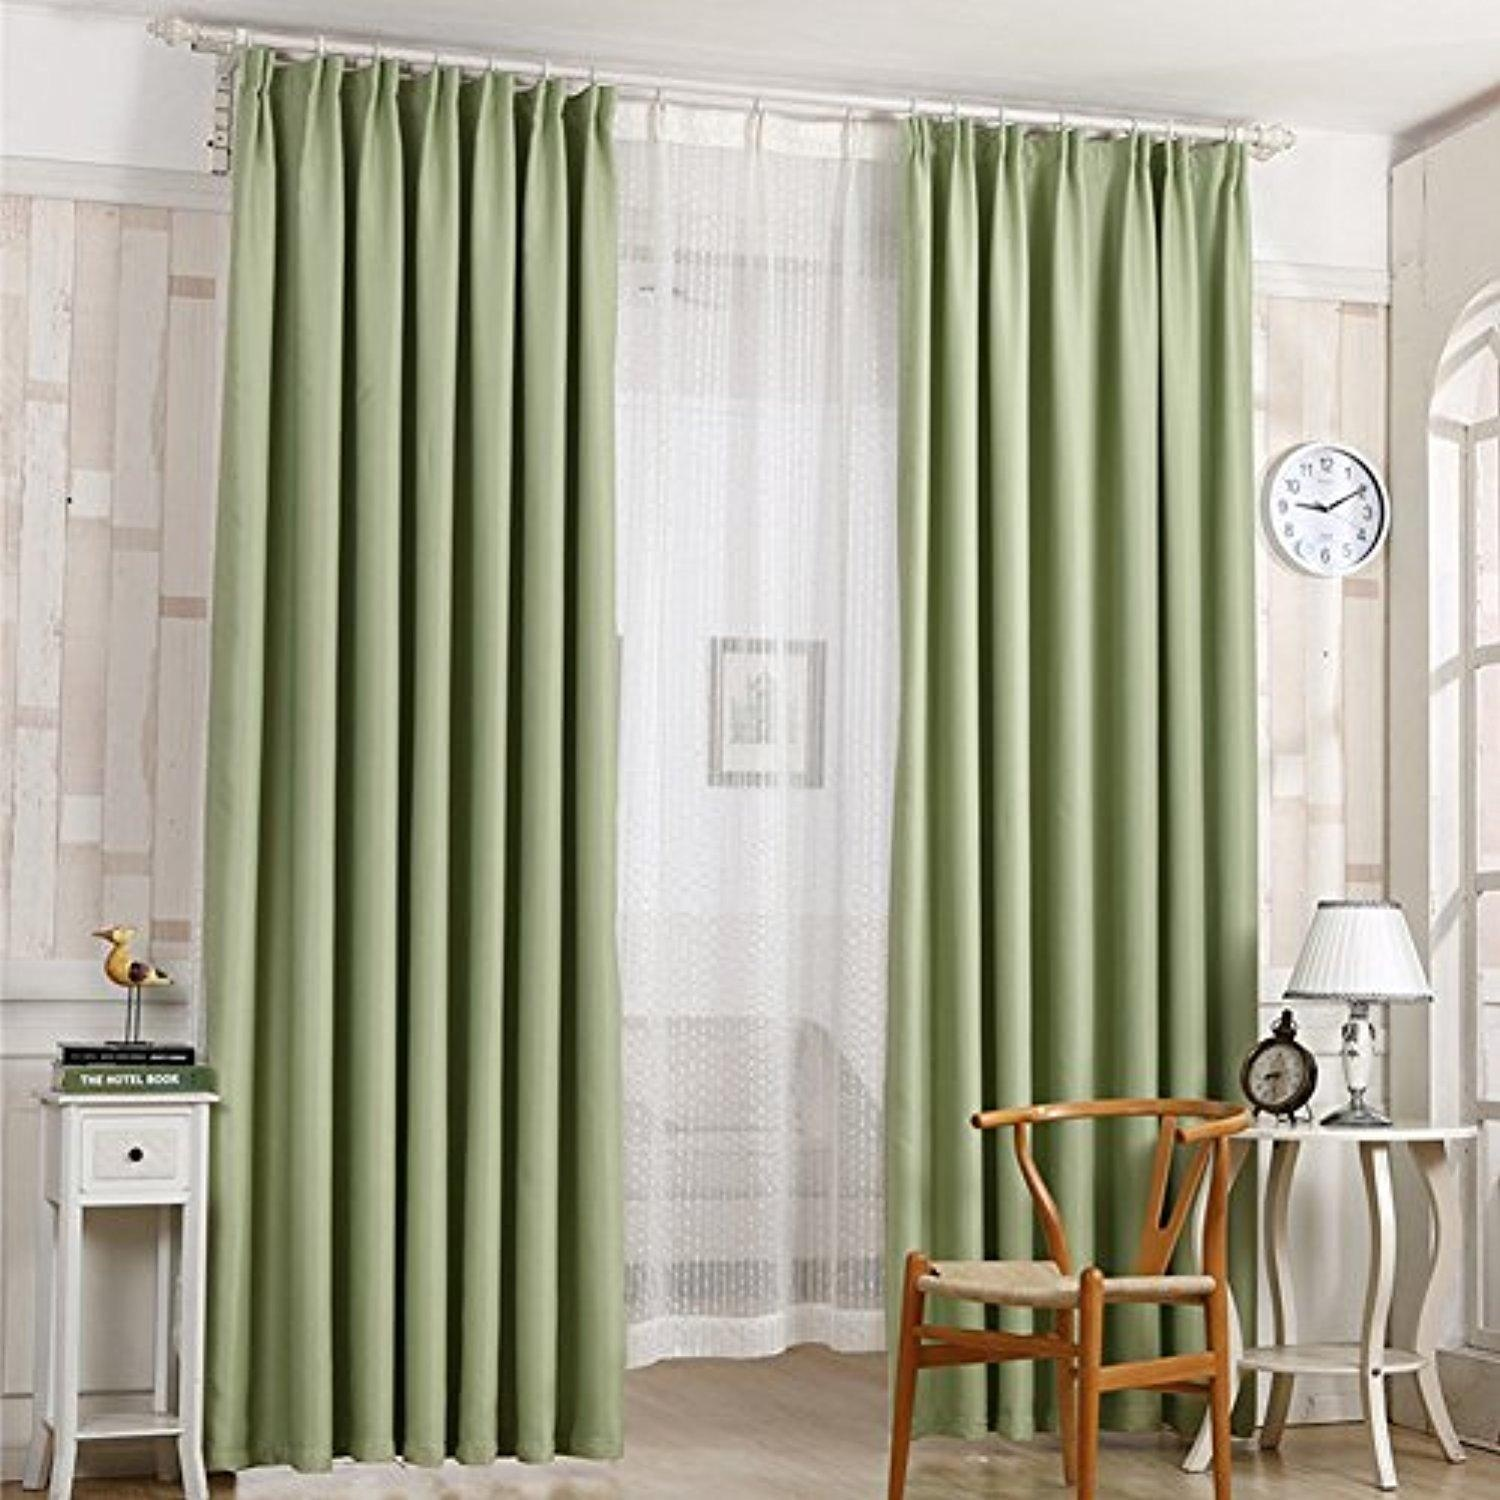 Perfect Interior Decorating Ideas with Thermal Insulated Curtains: Thermal Insulated Curtains | Curtains For Cold Weather | Curtains Thermal Insulation